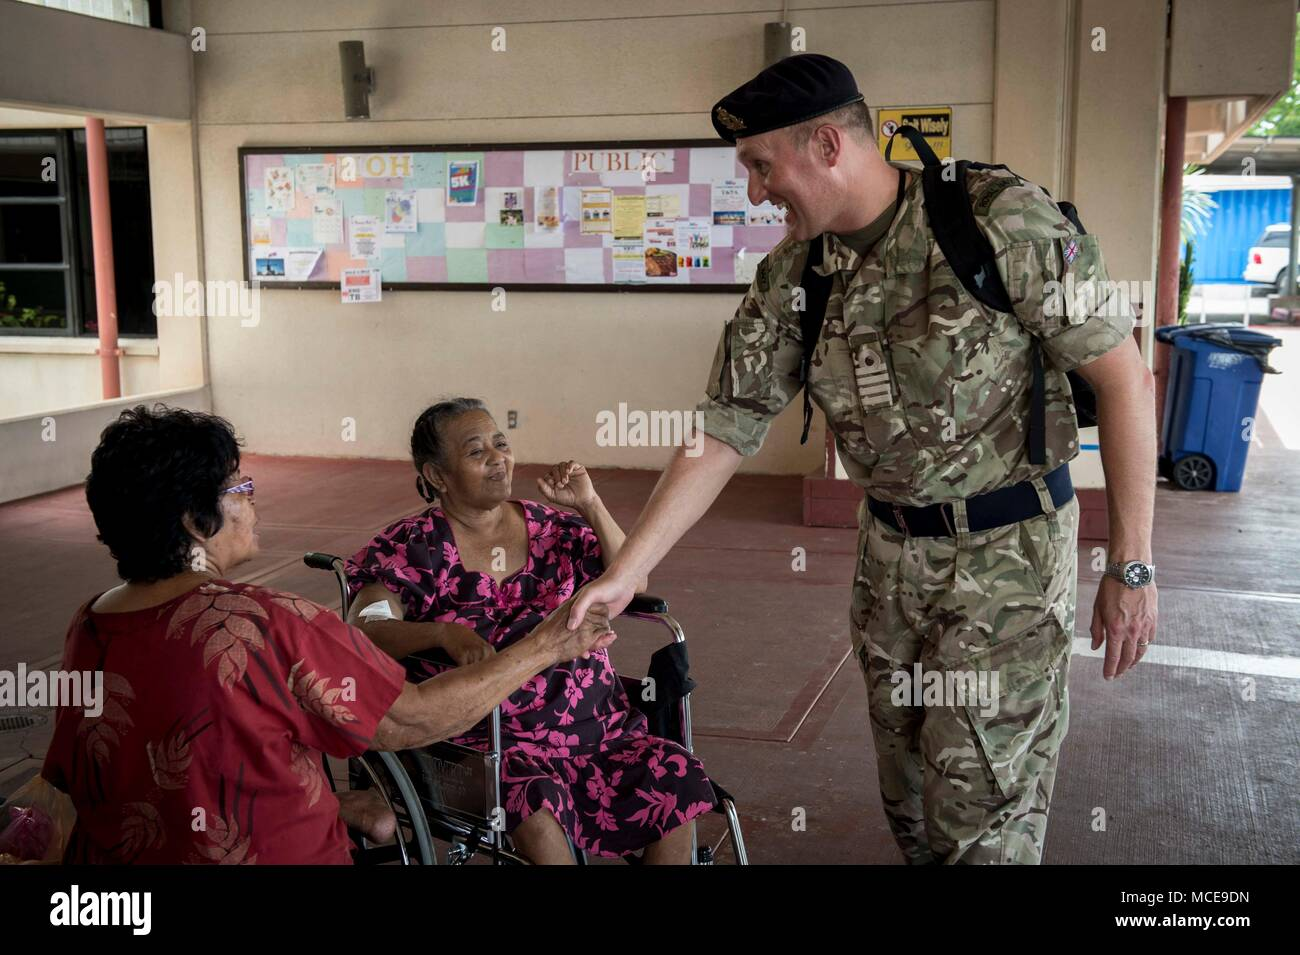 180409-N-MW694-0090 KOROR, Palau (April 09, 2018) Royal Navy Capt. Peter Olive, Pacific Partnership 2018 (PP18) Deputy Mission Commander, introduces himself to patients at Belau National Hospital during a PP18 medical subject matter exchange, April 9. PP18's mission is to work collectively with host and partner nations to enhance regional interoperability and disaster response capabilities, increase stability and security in the region, and foster new and enduring friendships across the Indo-Pacific Region. Pacific Partnership, now in its 13th iteration, is the largest annual multinational hum - Stock Image